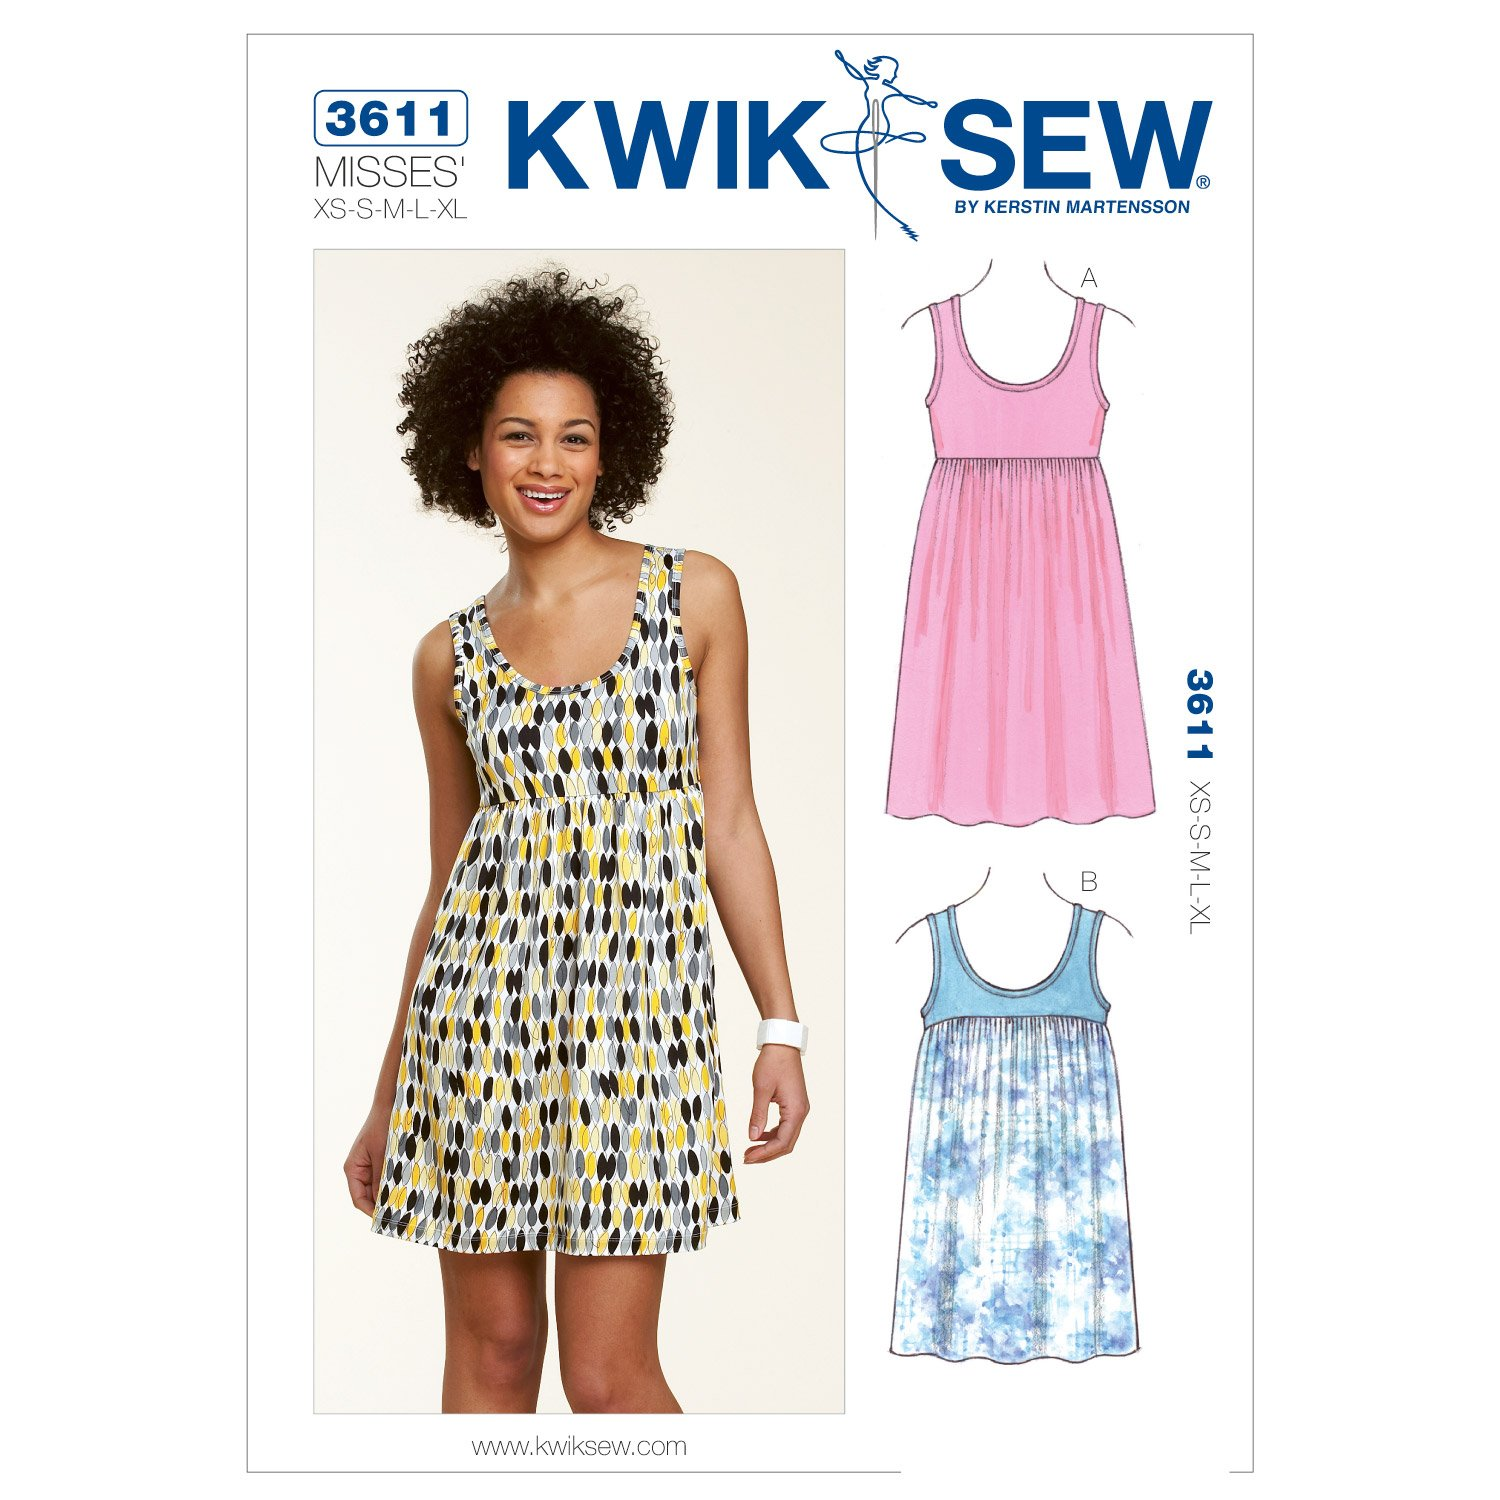 Beautiful Kwik Sew Muster Katalog Pattern - Decke Stricken Muster ...